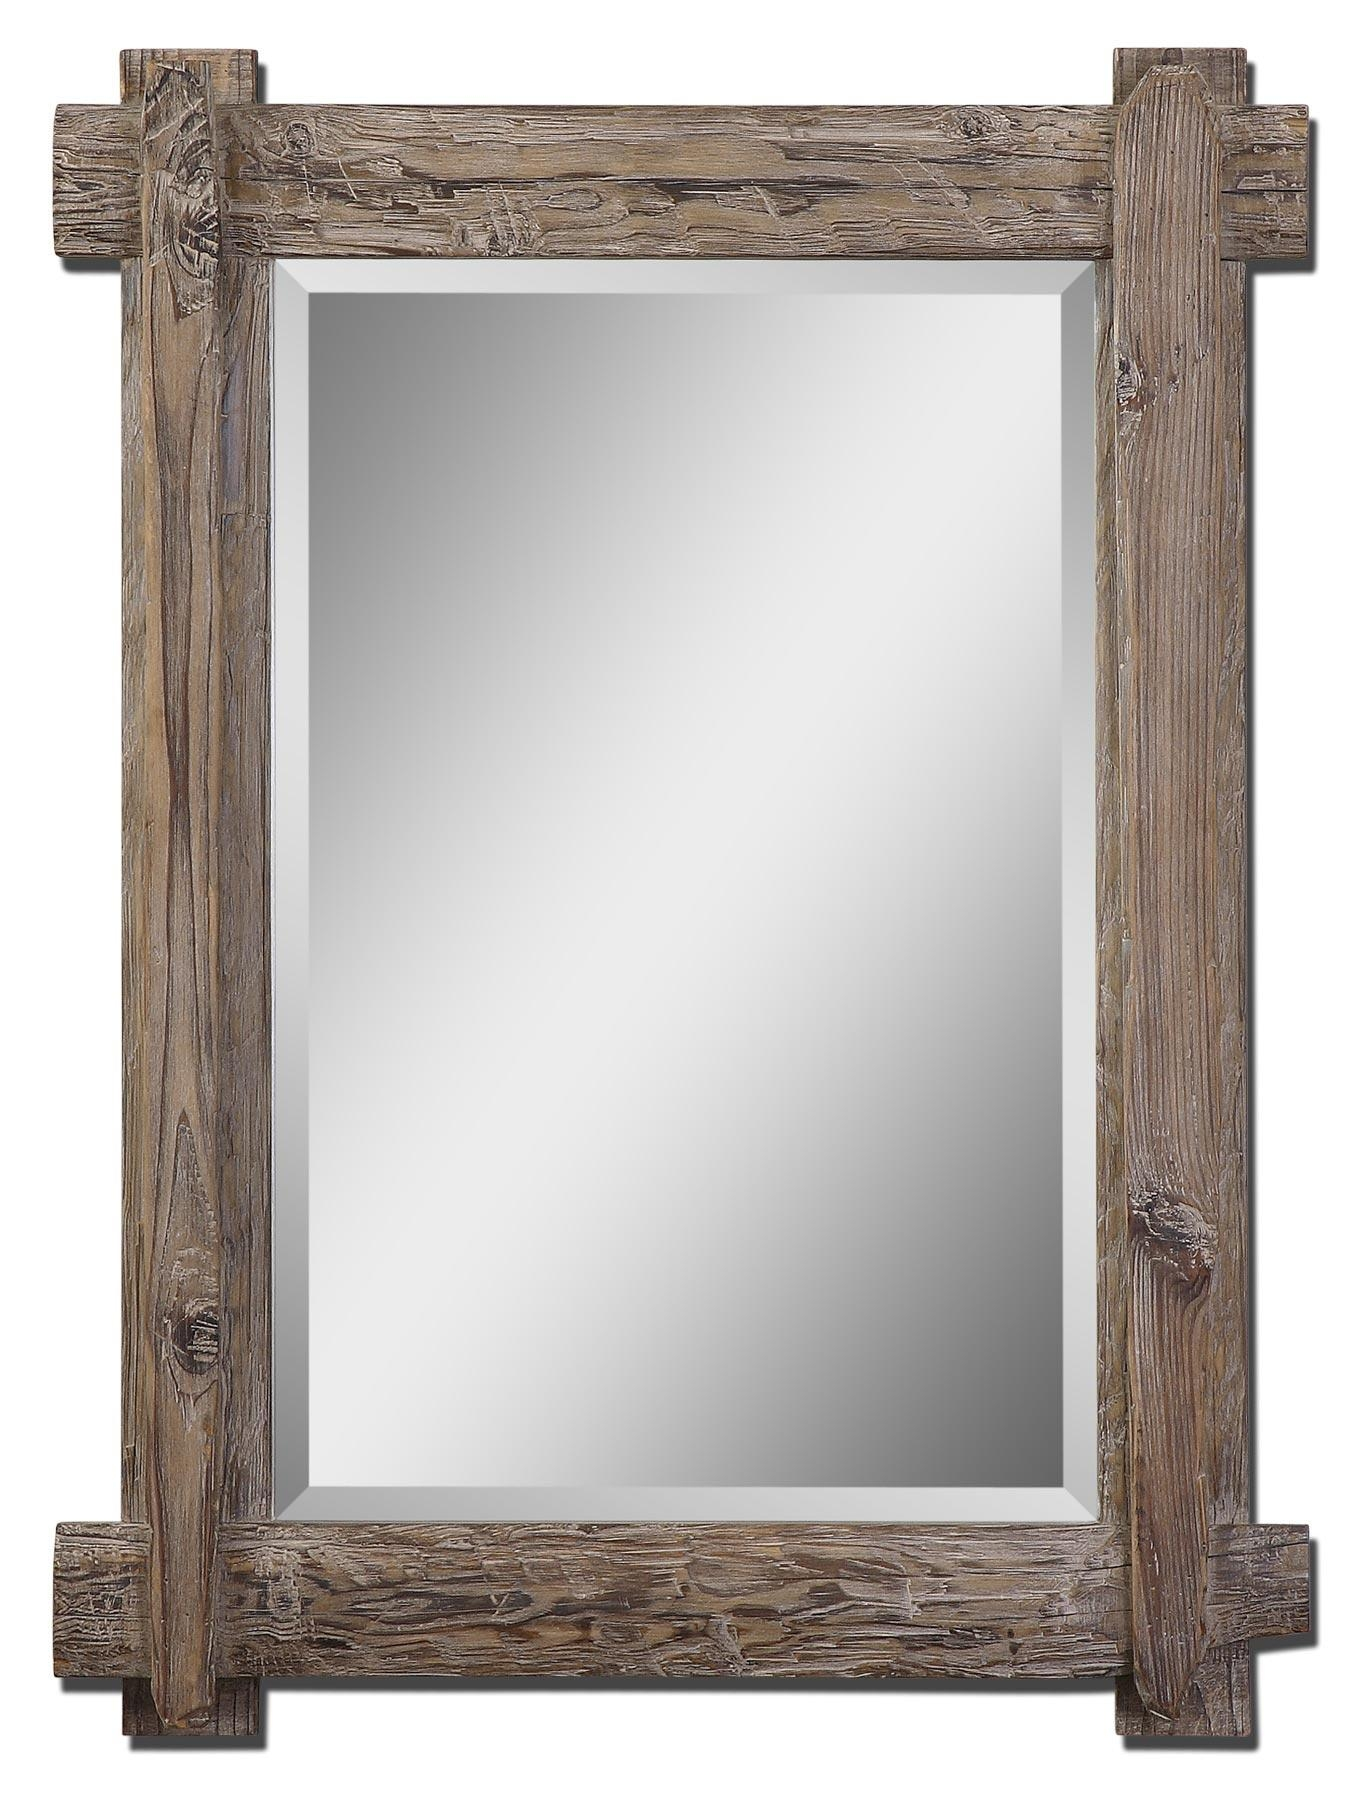 Rustic Wood Framed Mirrors 28 Cute Interior And Rustic Wood Framed Regarding Wooden Mirror (Image 6 of 20)